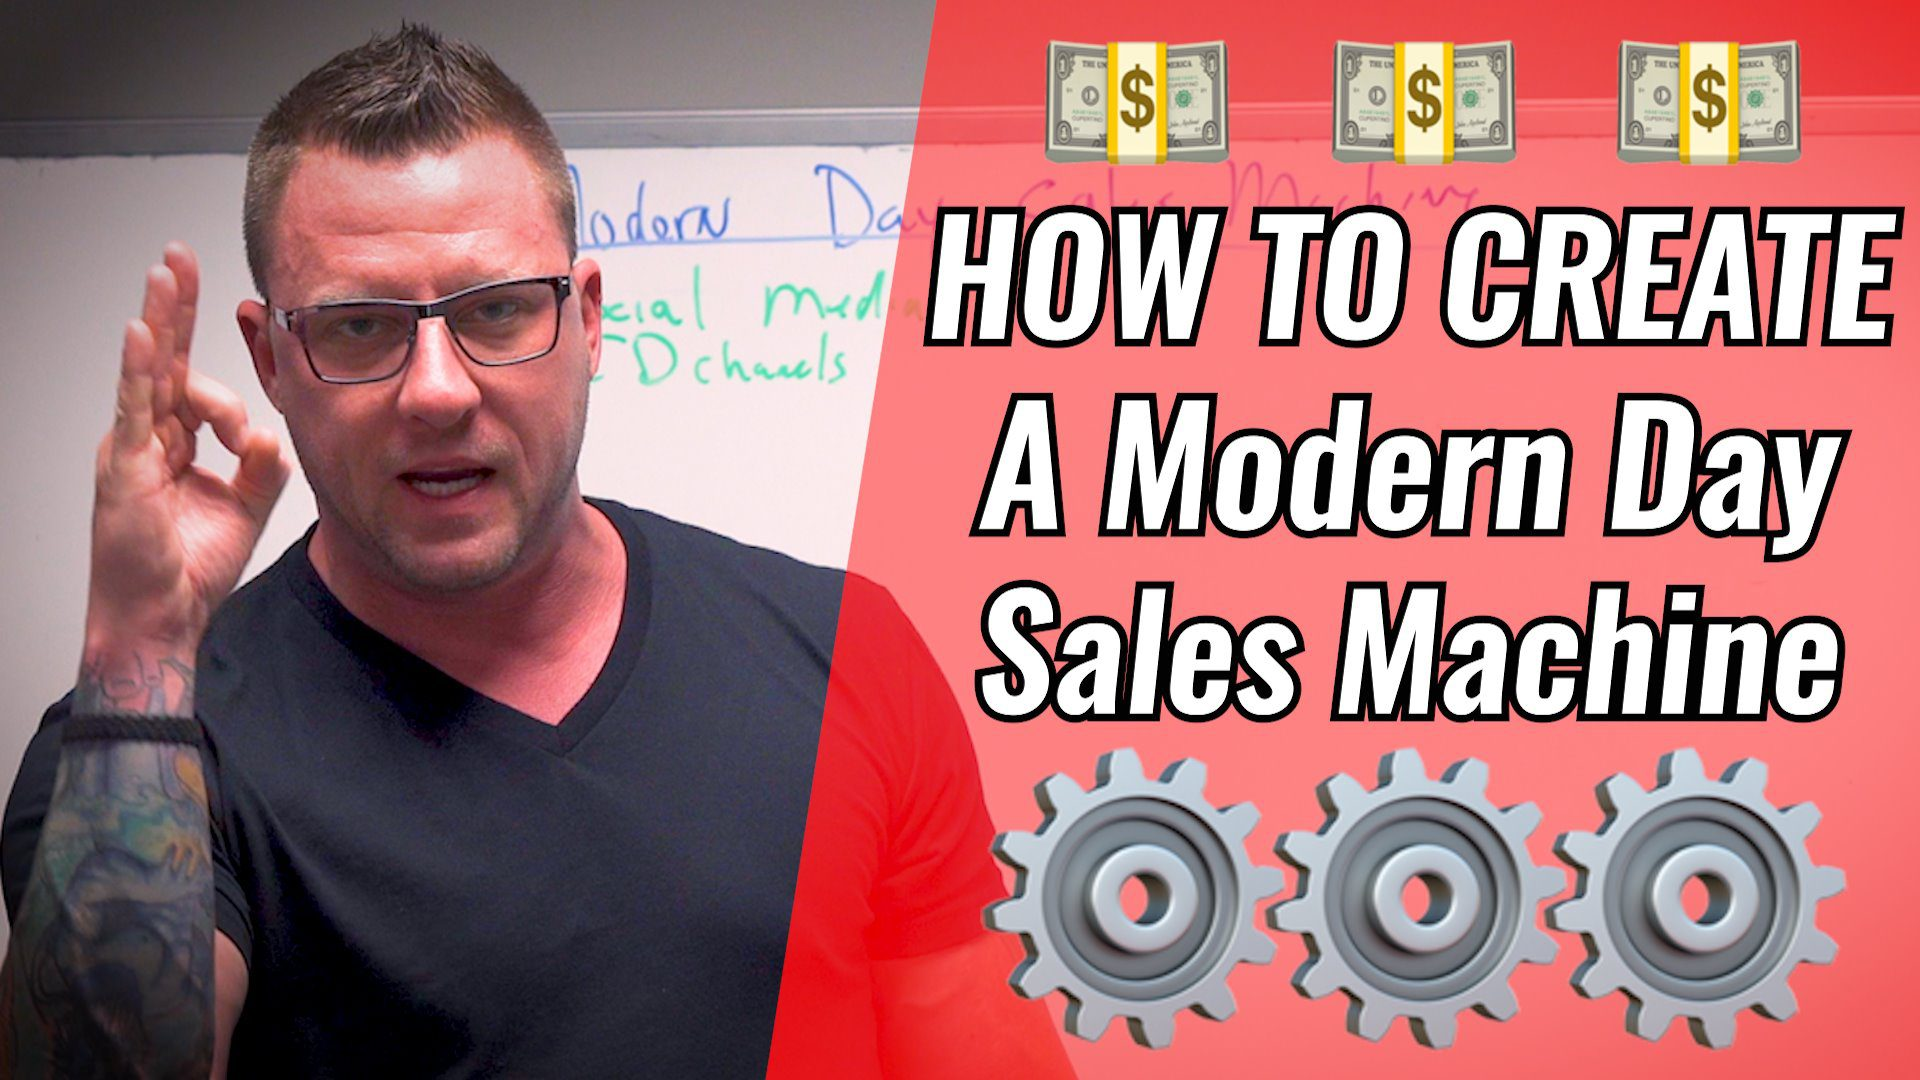 How To Create a Modern Day Sales Machine [Video]